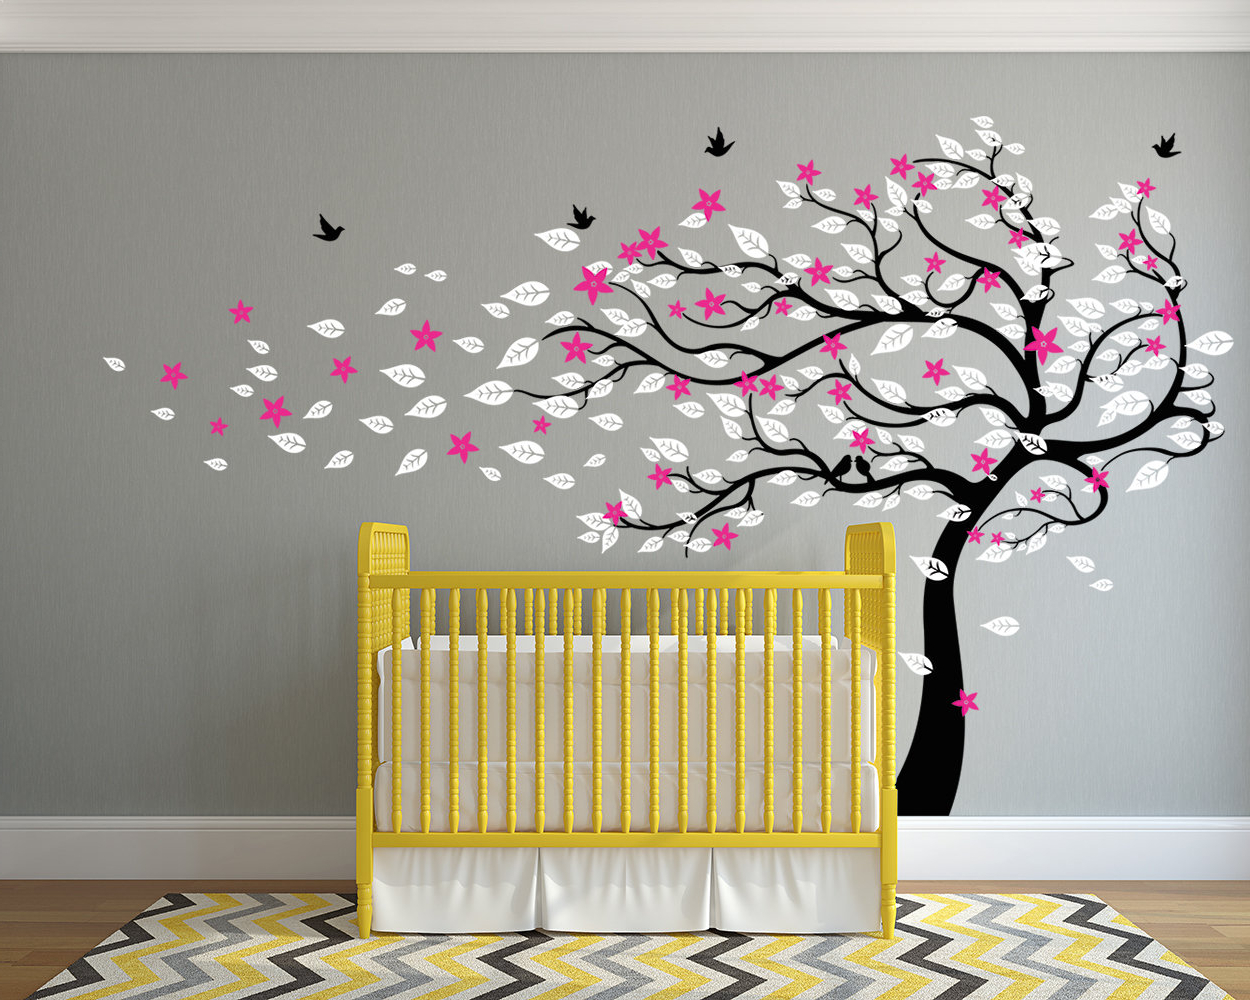 Red Barrel Studio Blowing Spring Blossom Tree With Birds Wall Decal Regarding Popular Tree Of Life Wall Decor By Red Barrel Studio (View 13 of 20)